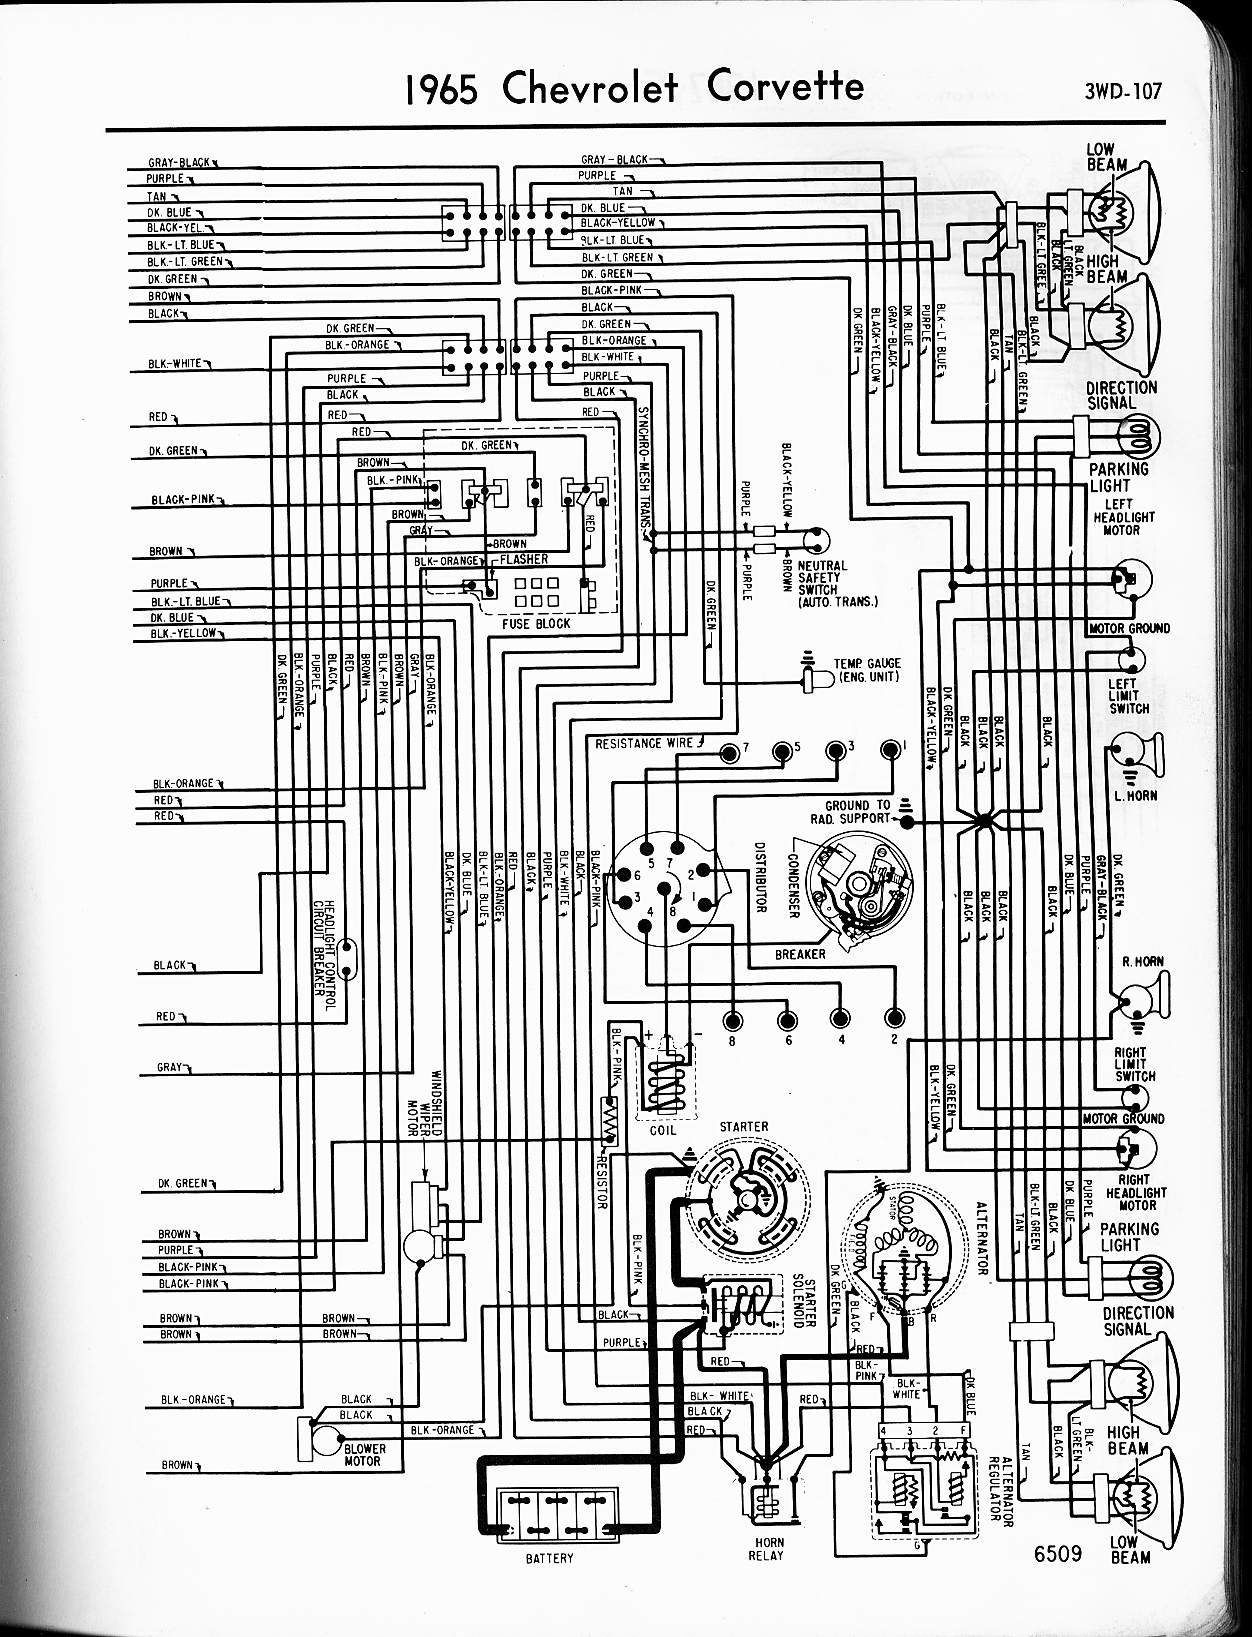 76 corvette stingray wiring diagram another blog about wiring rh  twosoutherndivas co 1965 Corvette Wiring Harness